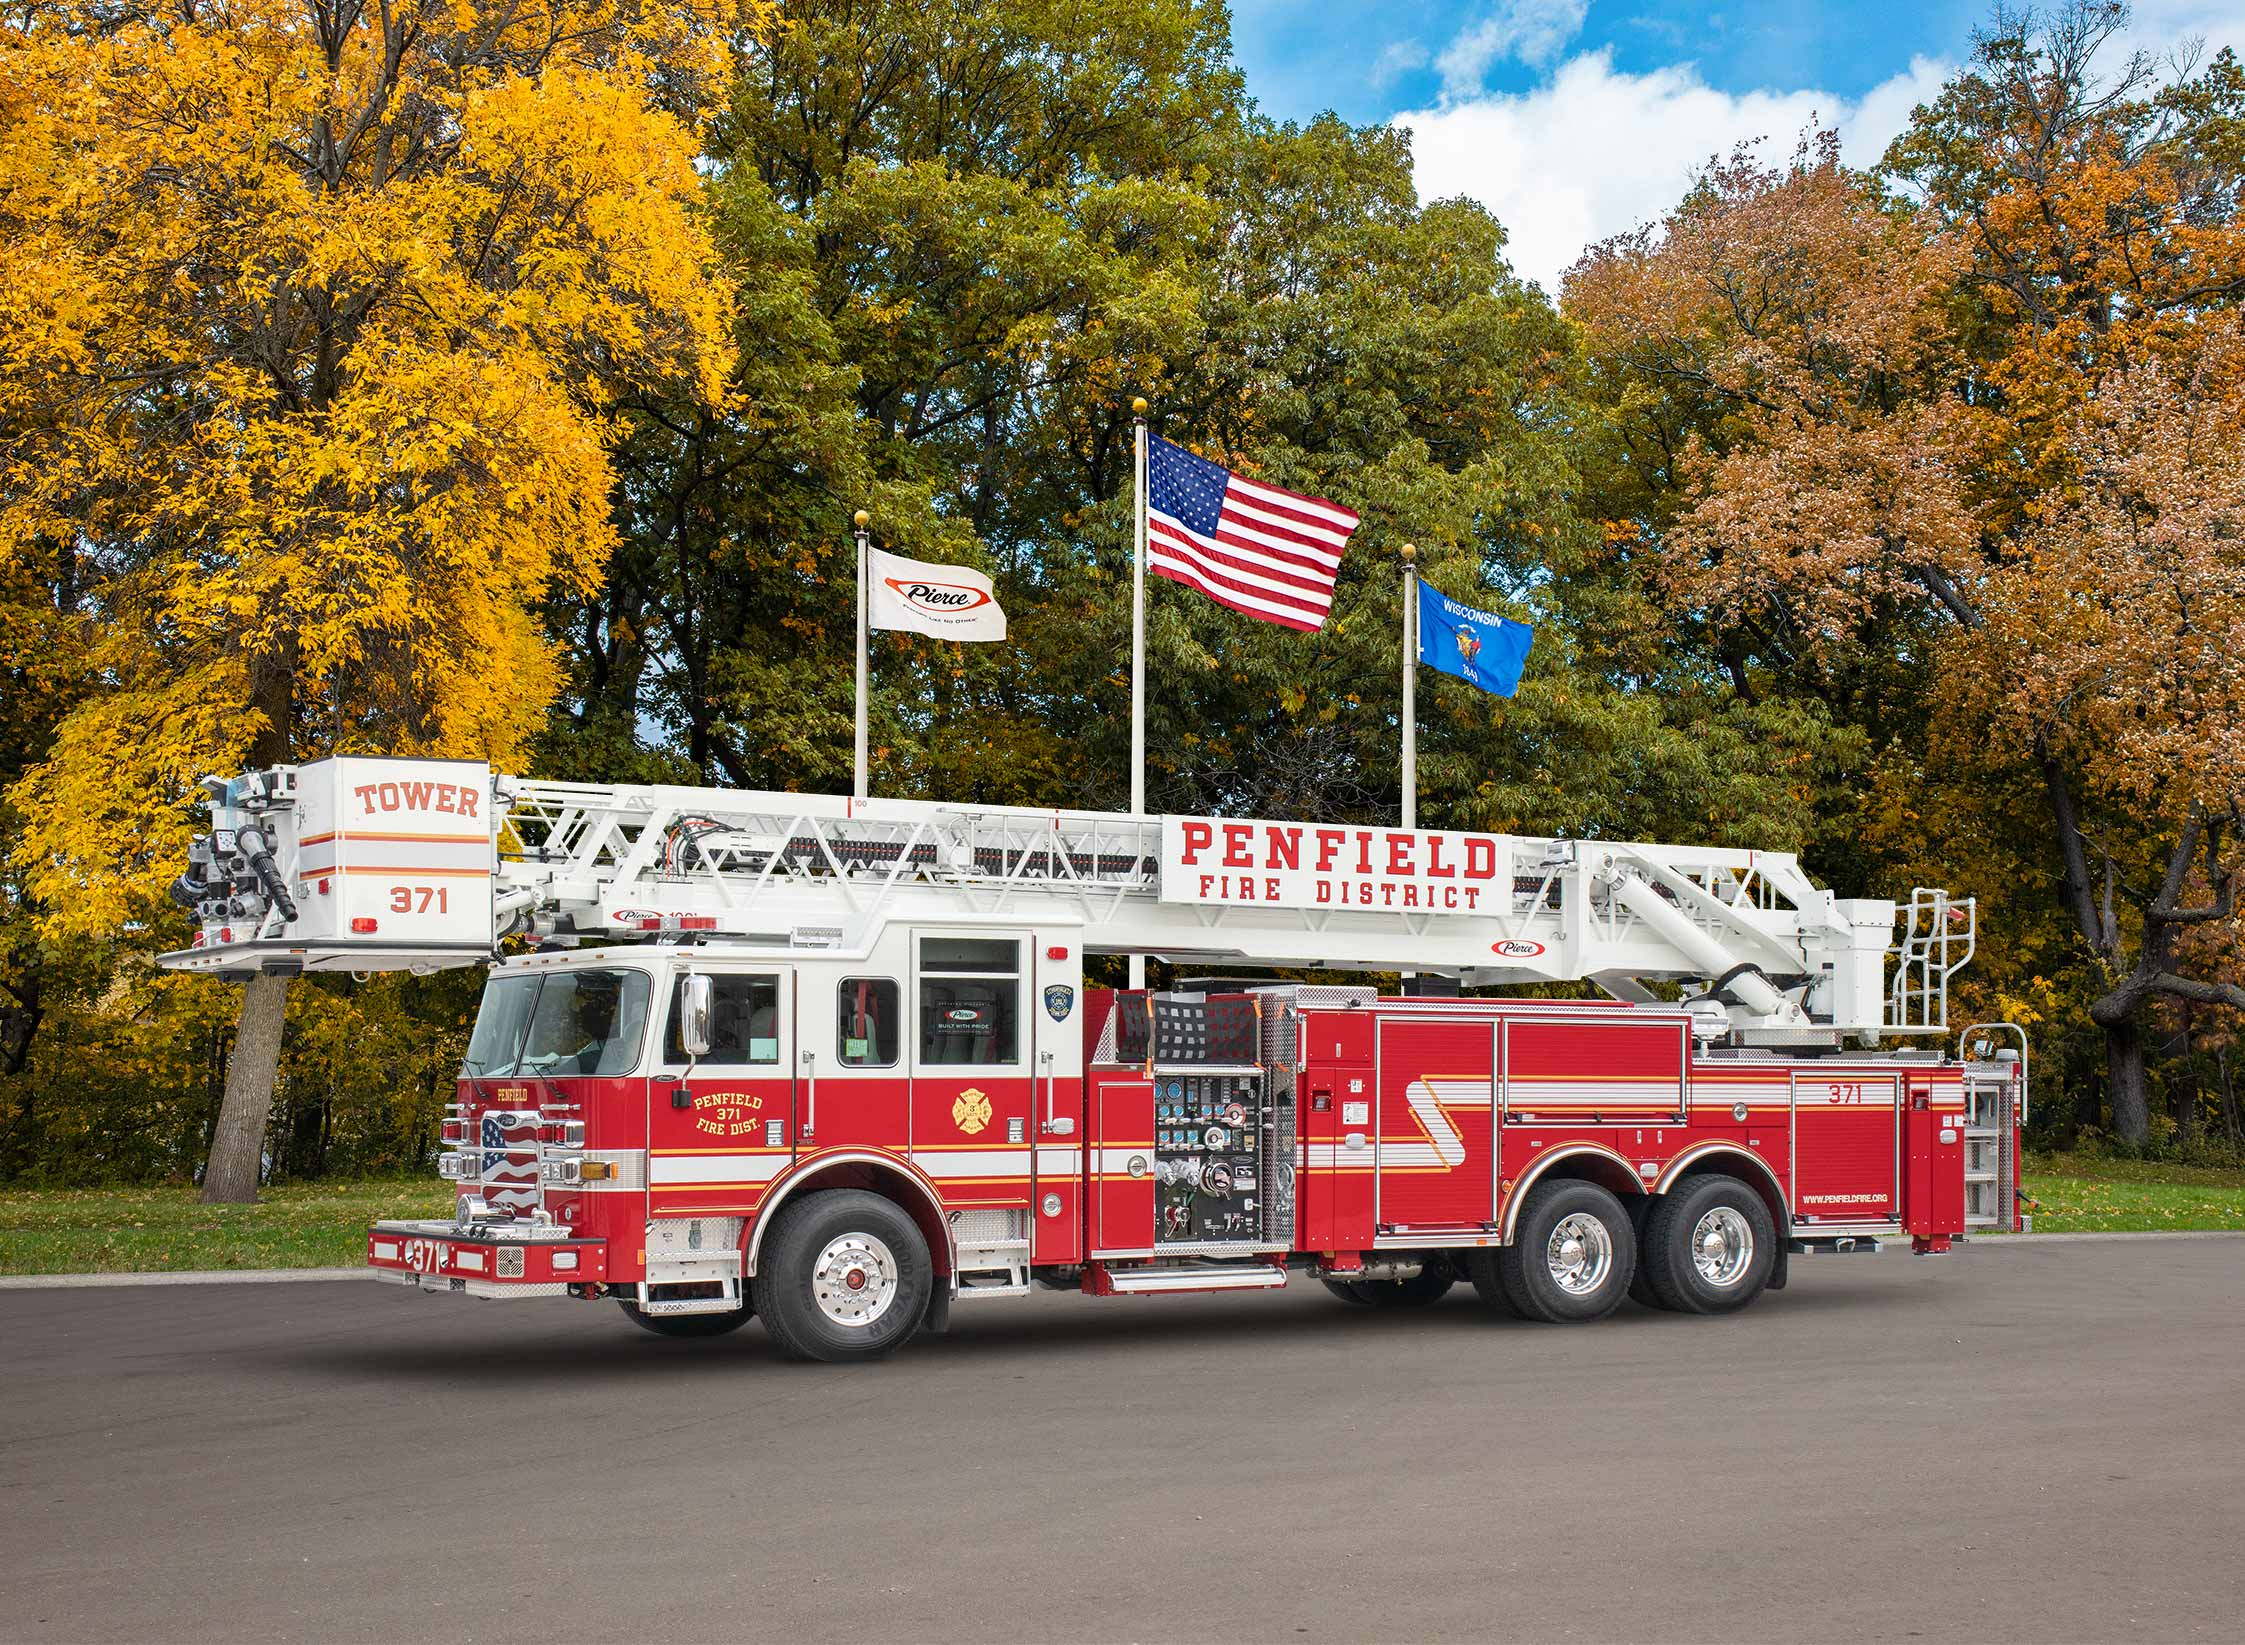 Penfield Fire District - Aerial